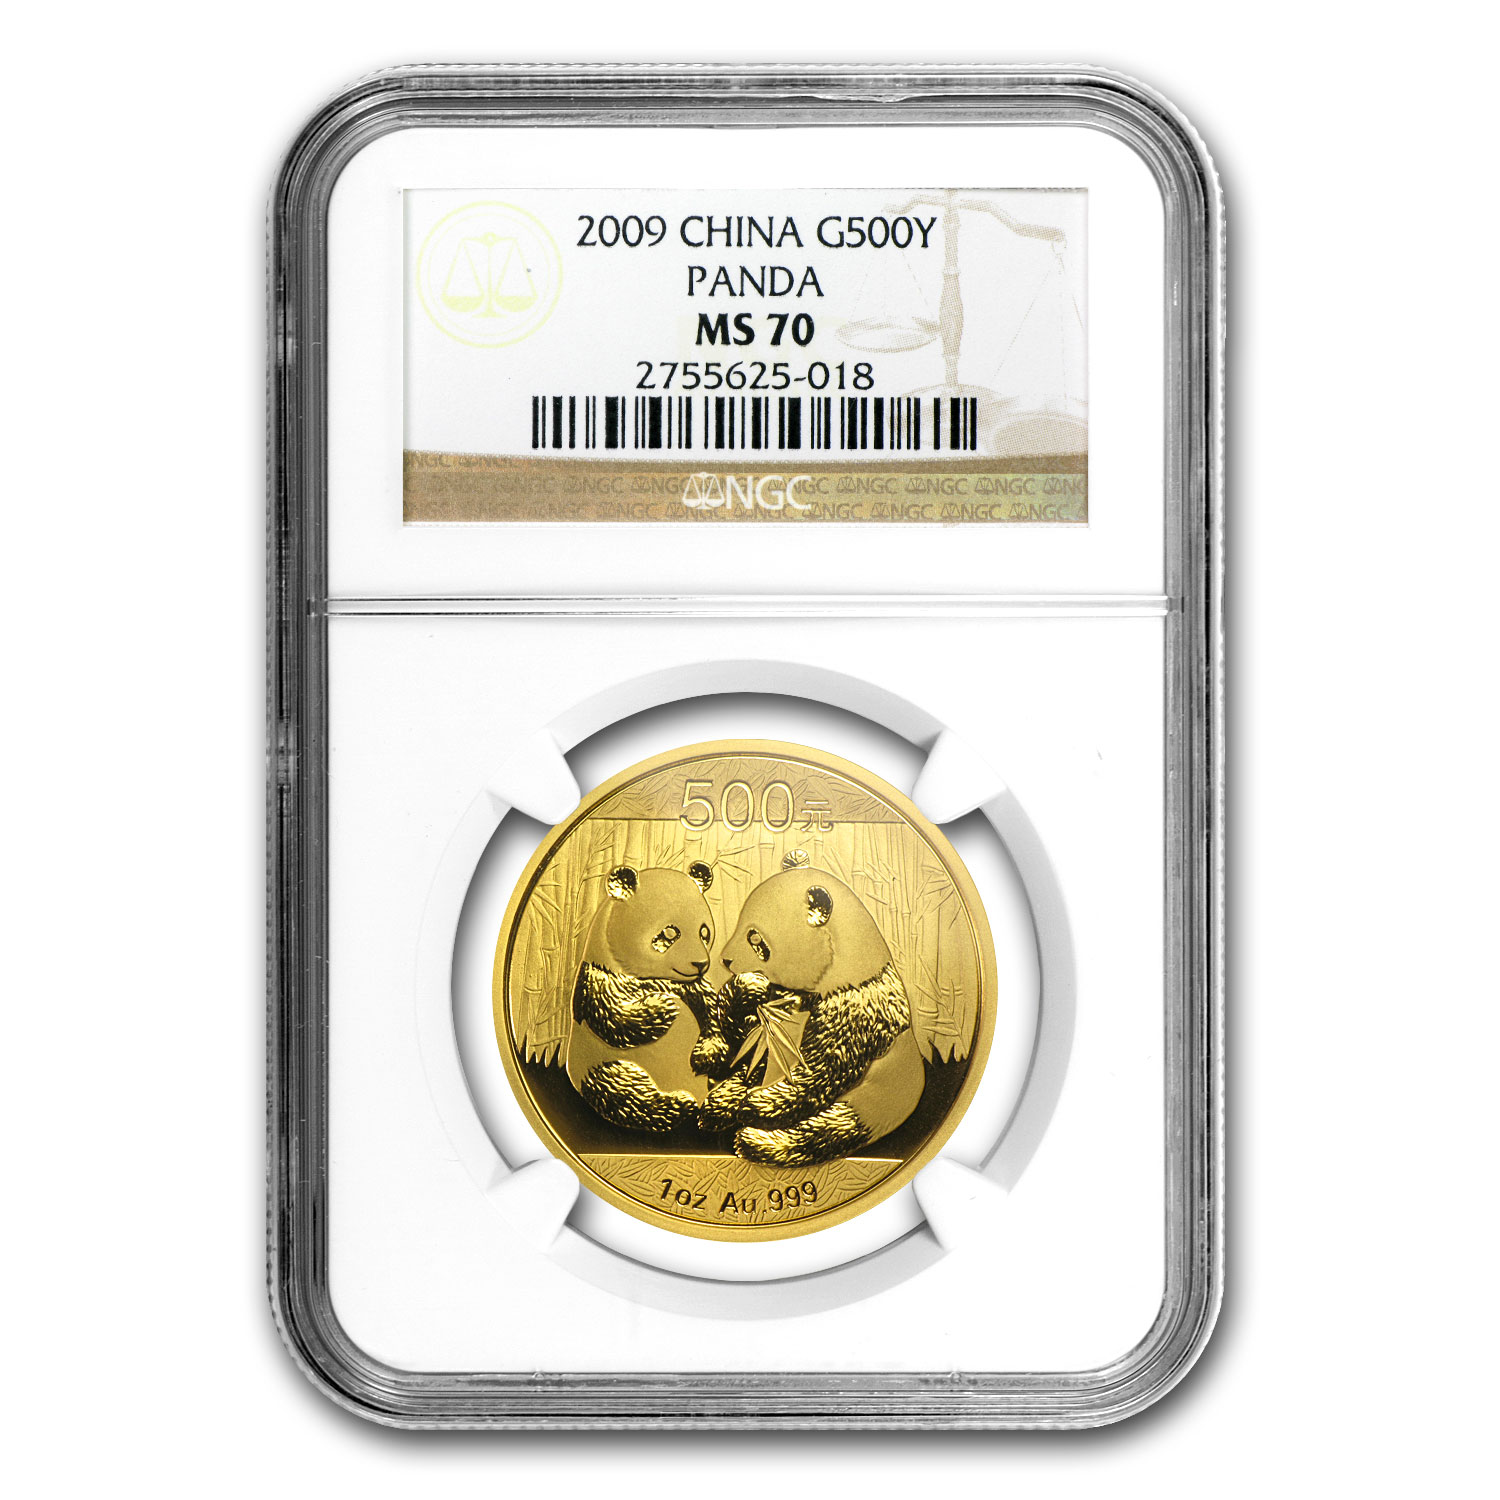 2009 China 1 oz Gold Panda MS-70 NGC